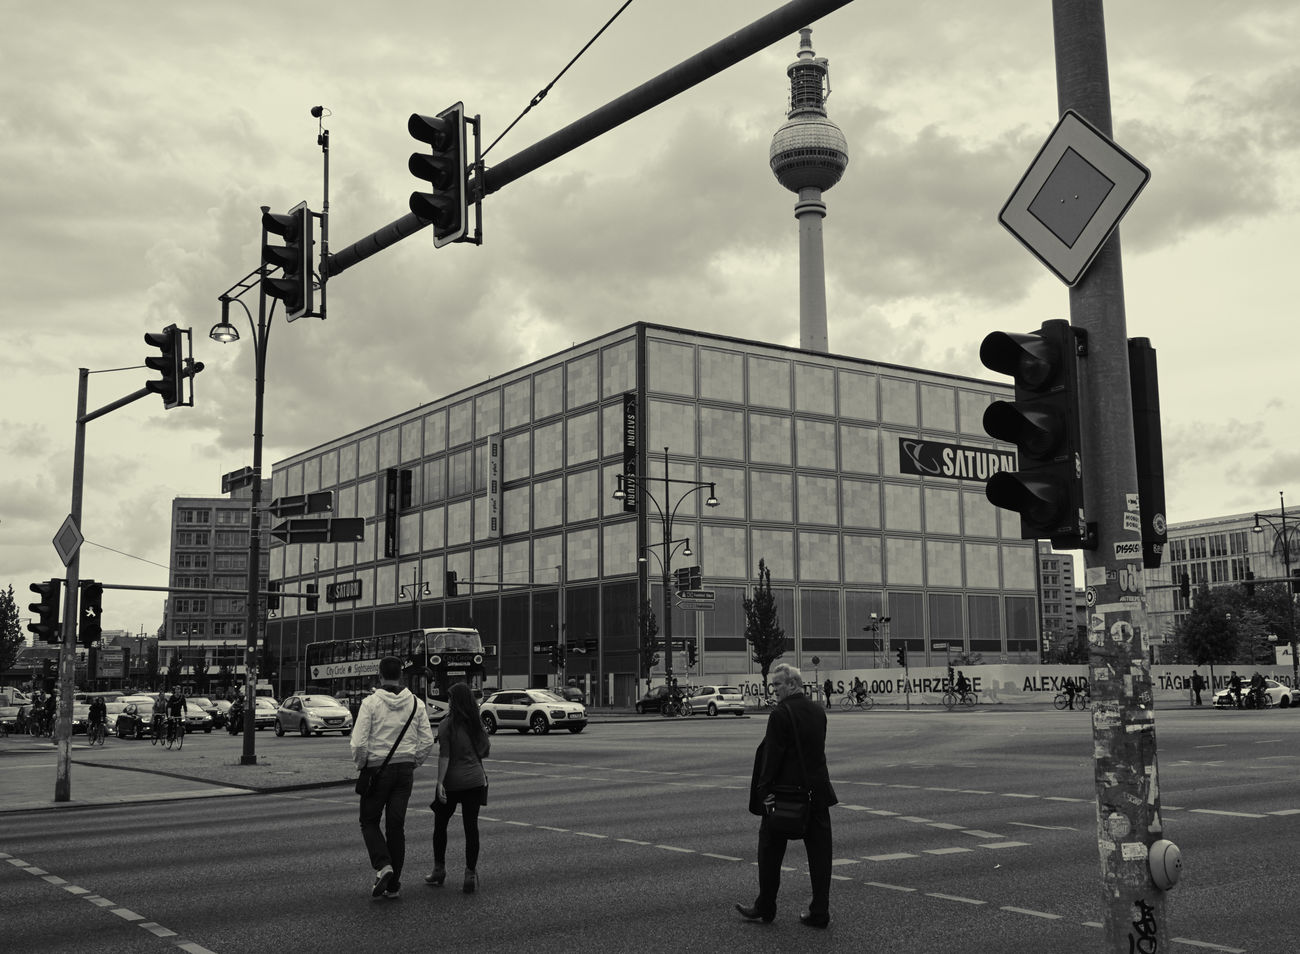 NEAR ALEXANDERPLATZ